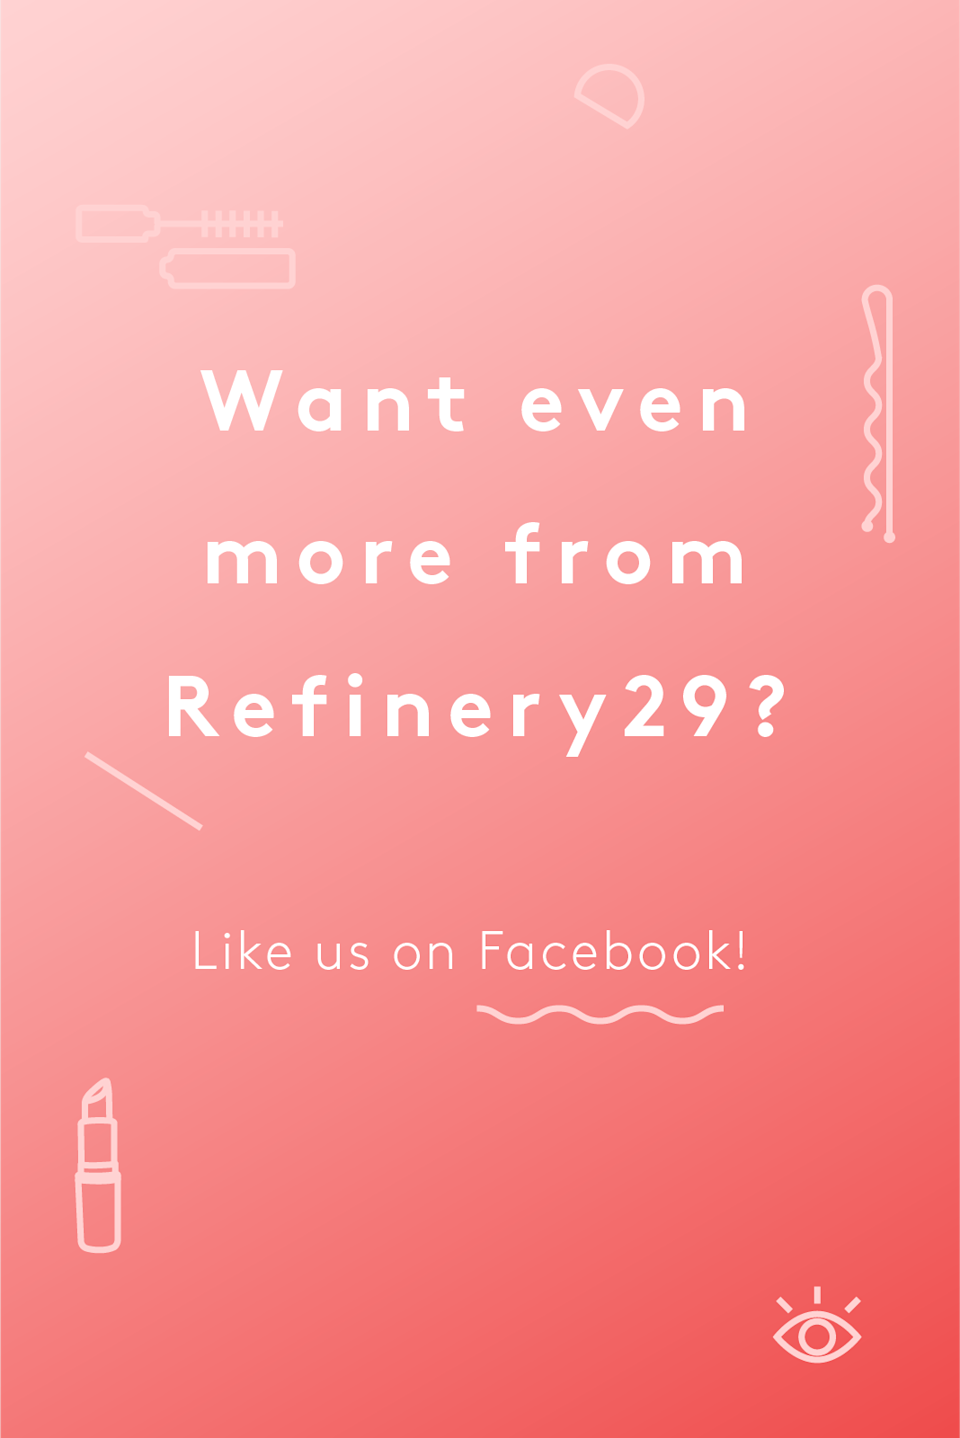 """<p>Like this post? There's more. Get tons of beauty tips, tutorials, and news on the <a href=""""http://www.facebook.com/refinery29beauty"""" rel=""""nofollow noopener"""" target=""""_blank"""" data-ylk=""""slk:Refinery29 Beauty Facebook page"""" class=""""link rapid-noclick-resp"""">Refinery29 Beauty Facebook page</a>. Like us on Facebook — we'll see you there!</p>"""